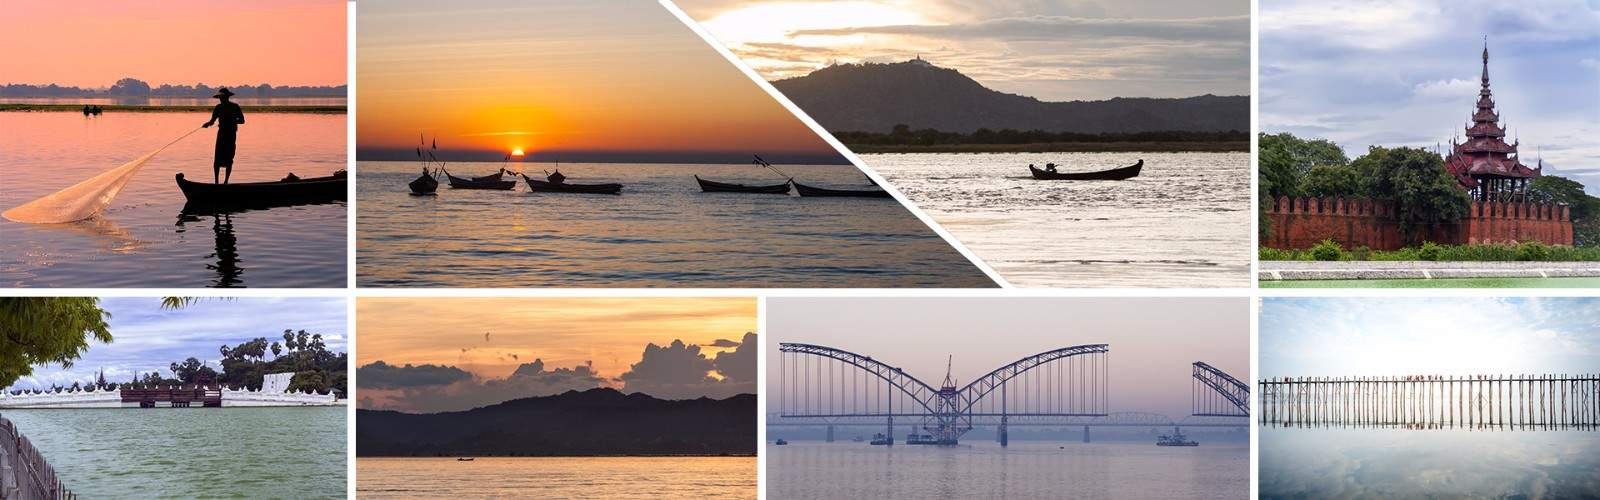 Wendy Wu Tours Irrawaddy River Holidays